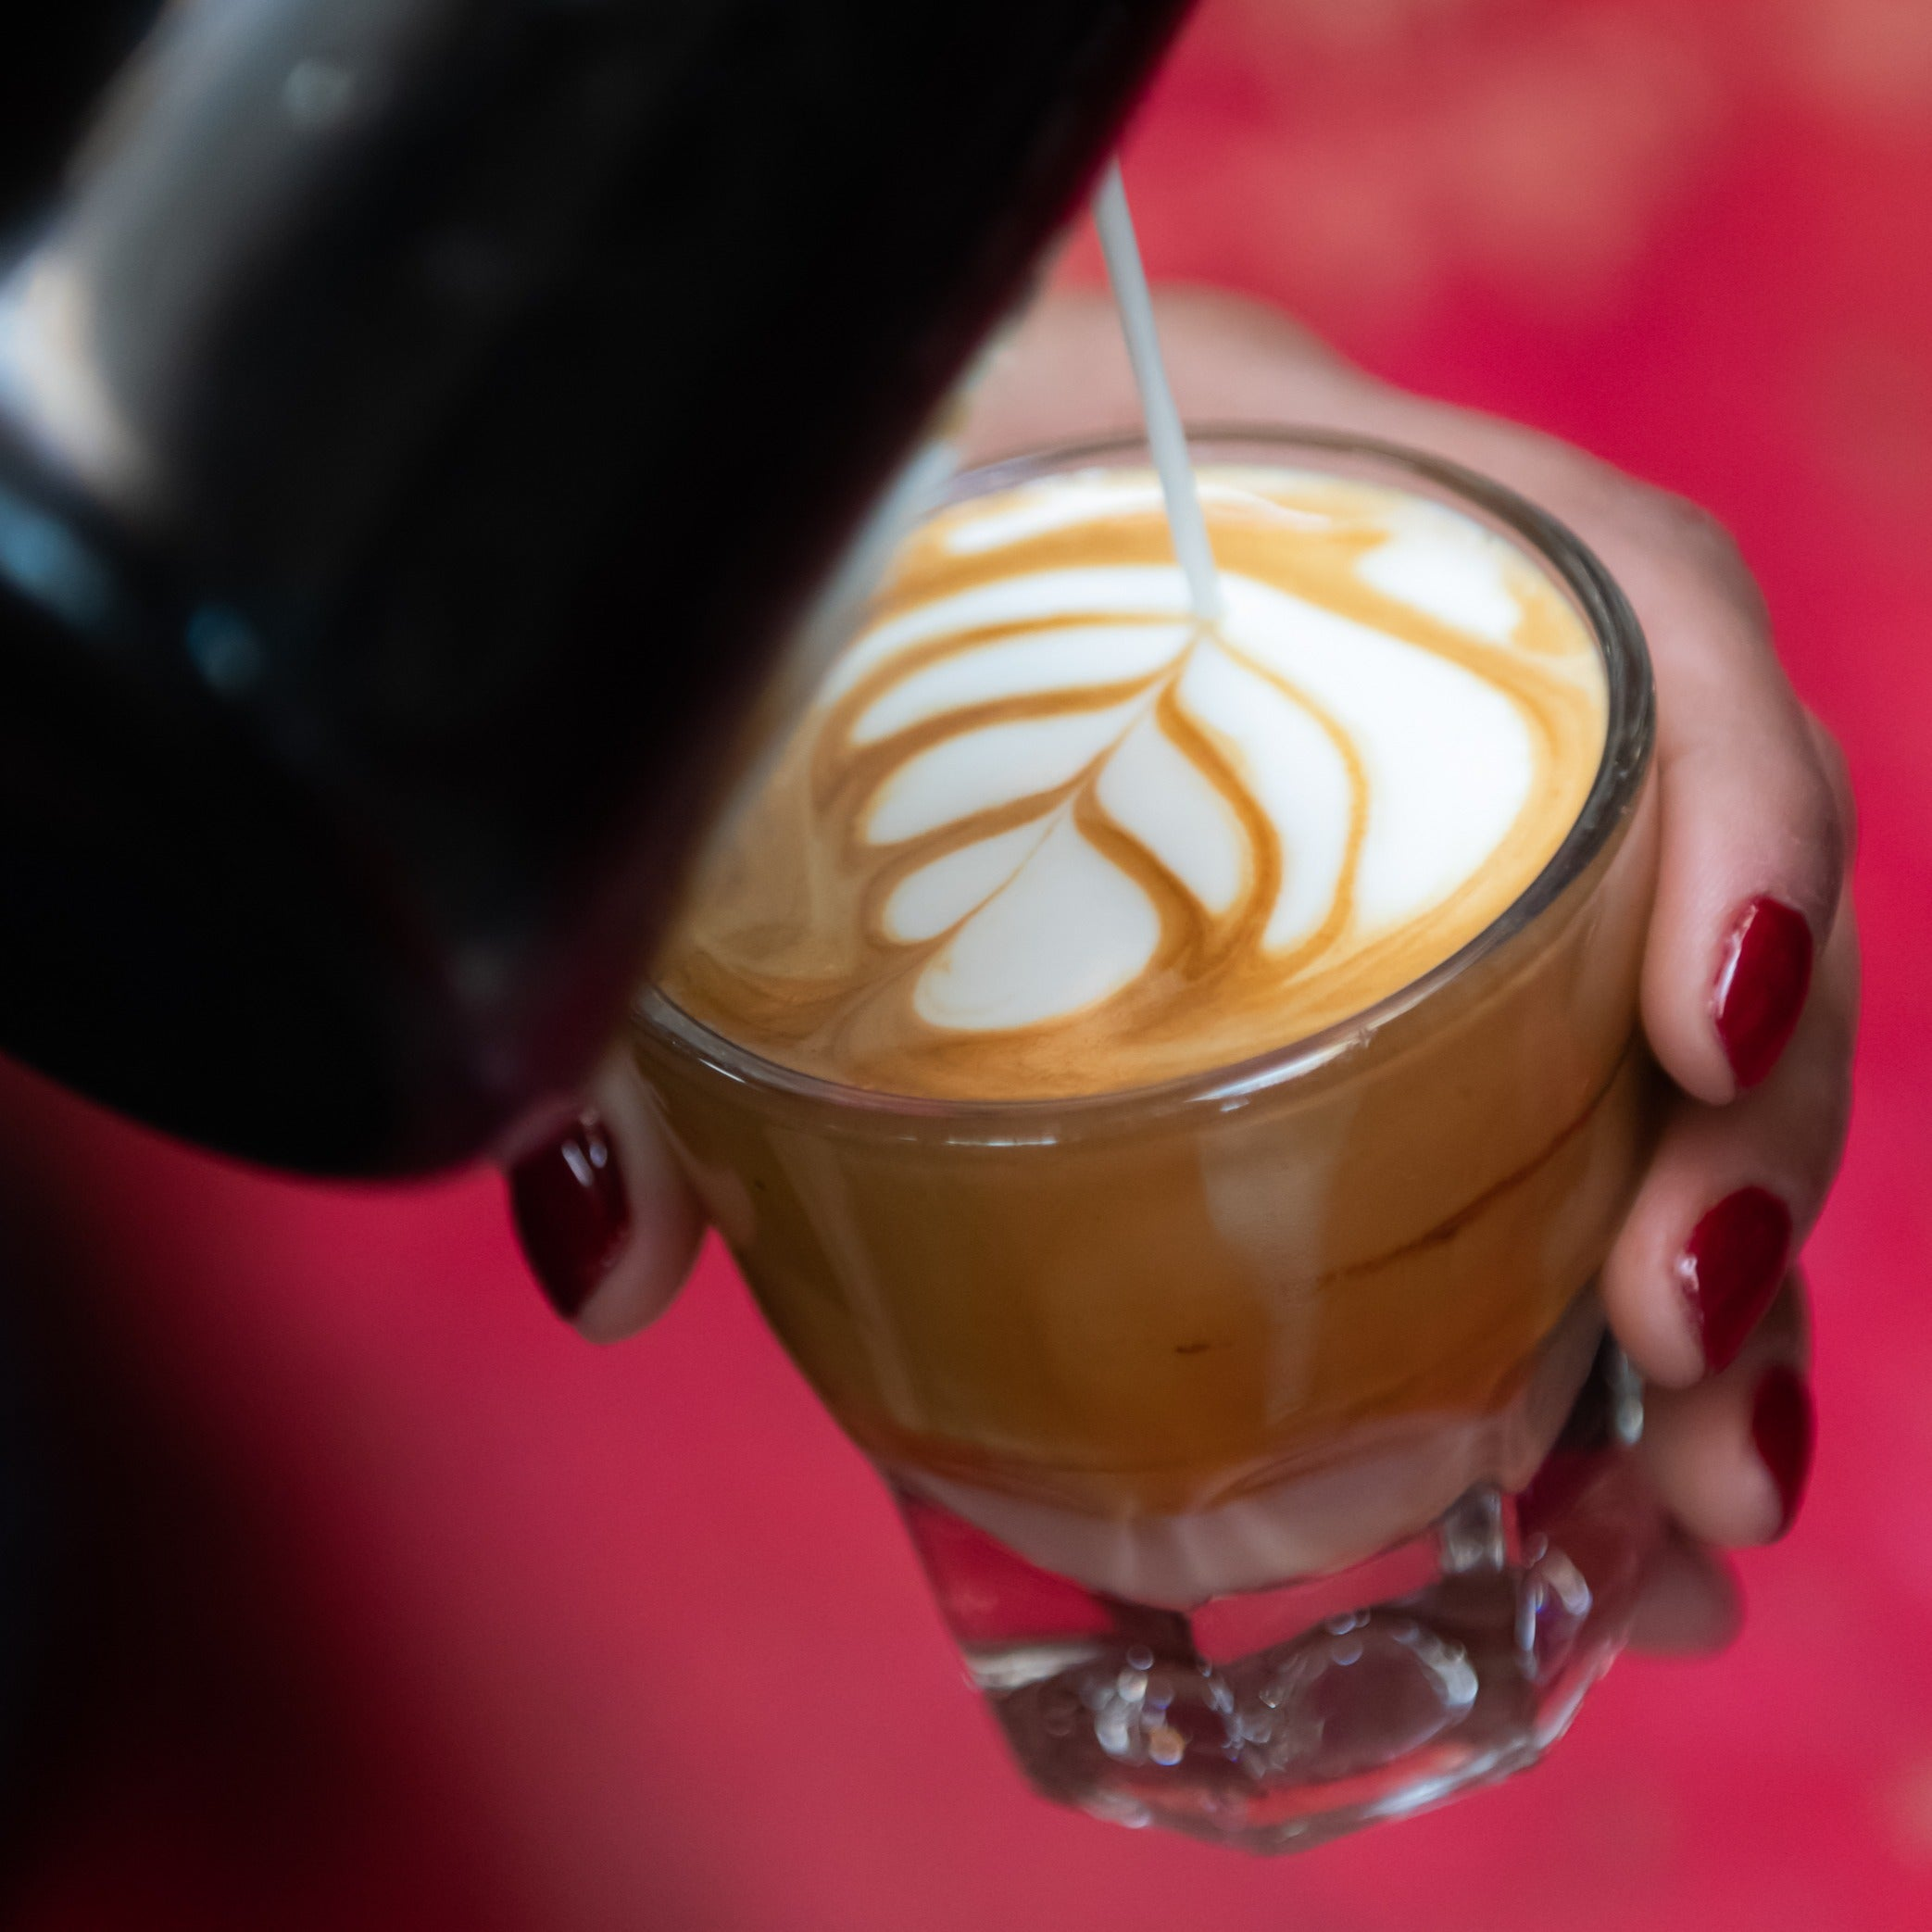 Online Class - Perfectly Poured: Latte Art Show & Tell